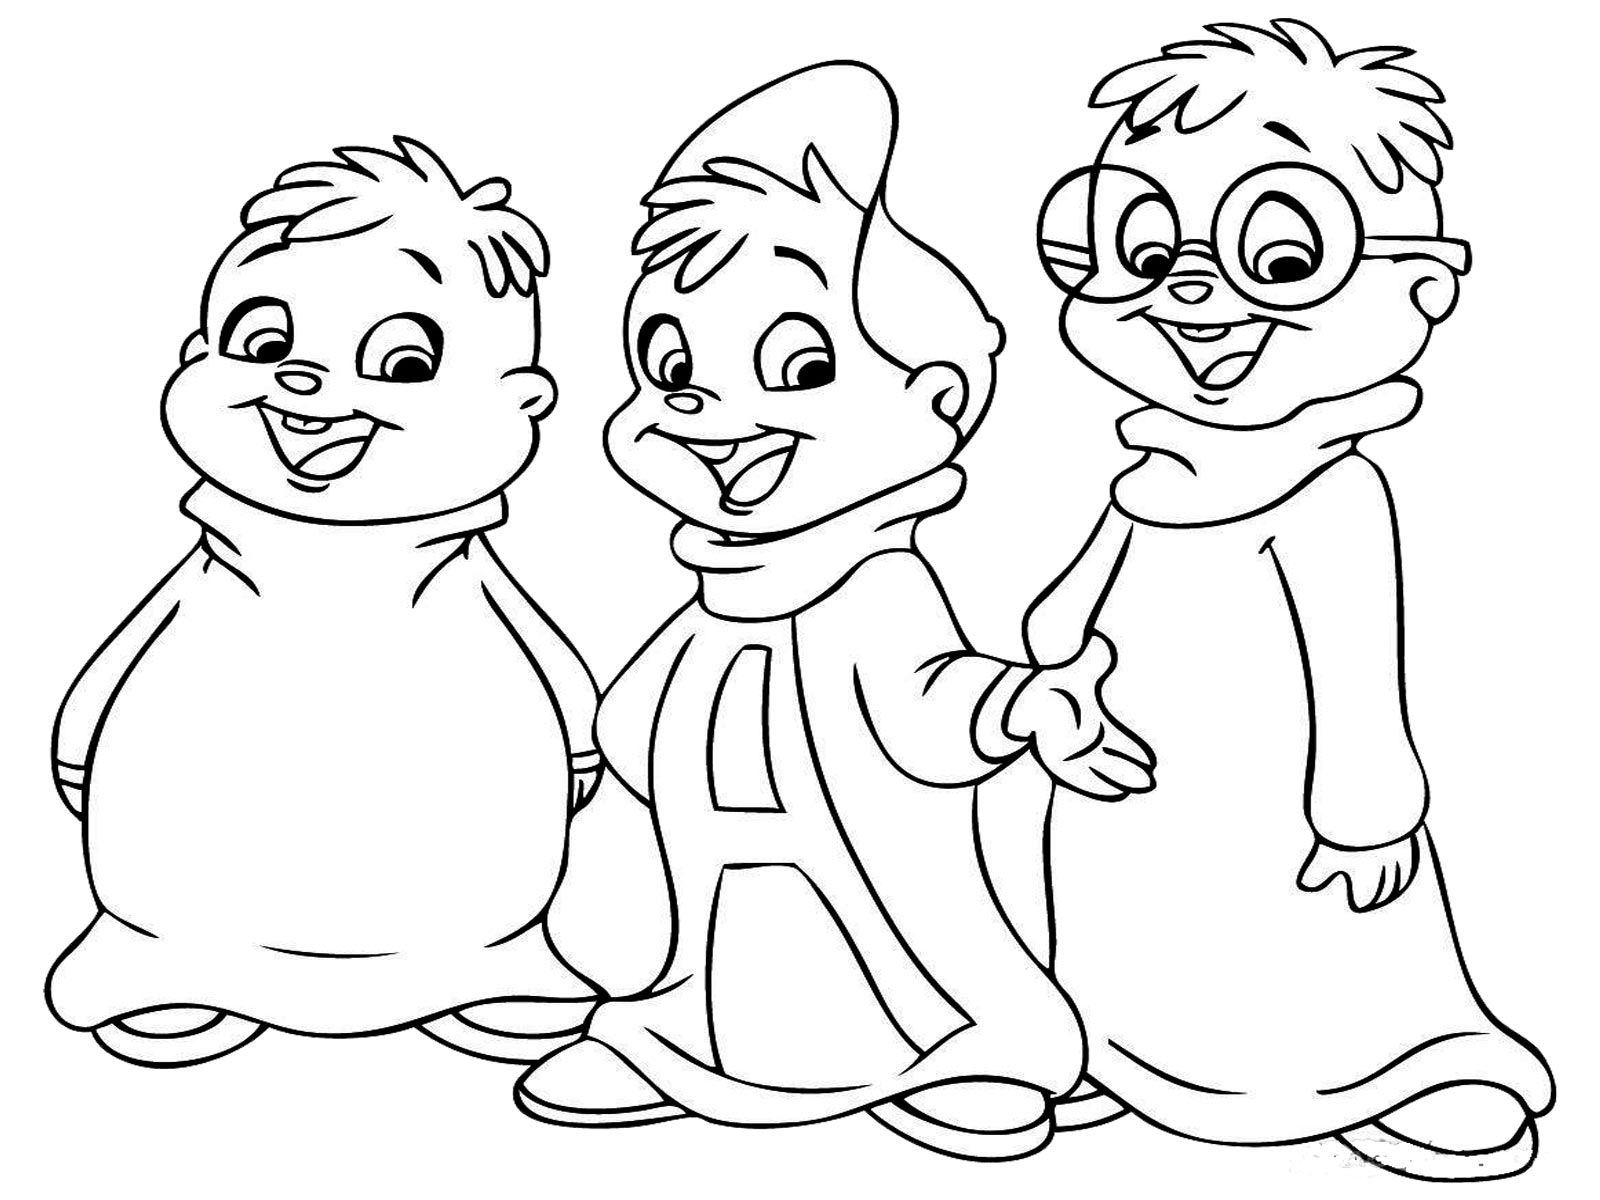 90s coloring sheets 90s coloring pages az coloring pages cartoon coloring 90s sheets coloring